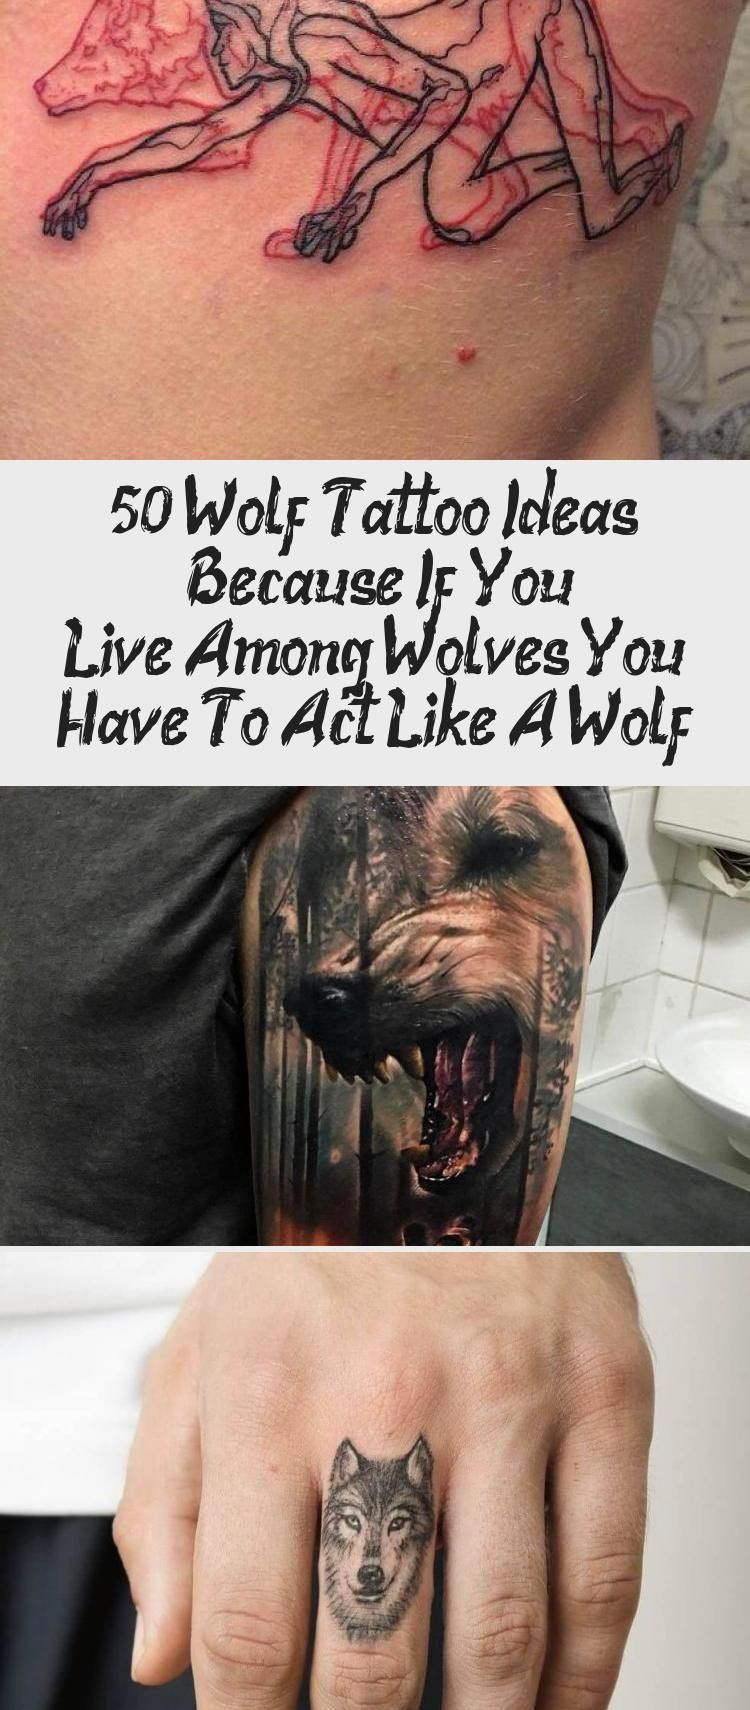 50 Wolf Tattoo Ideas  Because If You Live Among Wolves You Have To Act Like A W  50 Wolf Tattoo Ideas  Because If You Live Among Wolves You Have To Act Like A Wolf